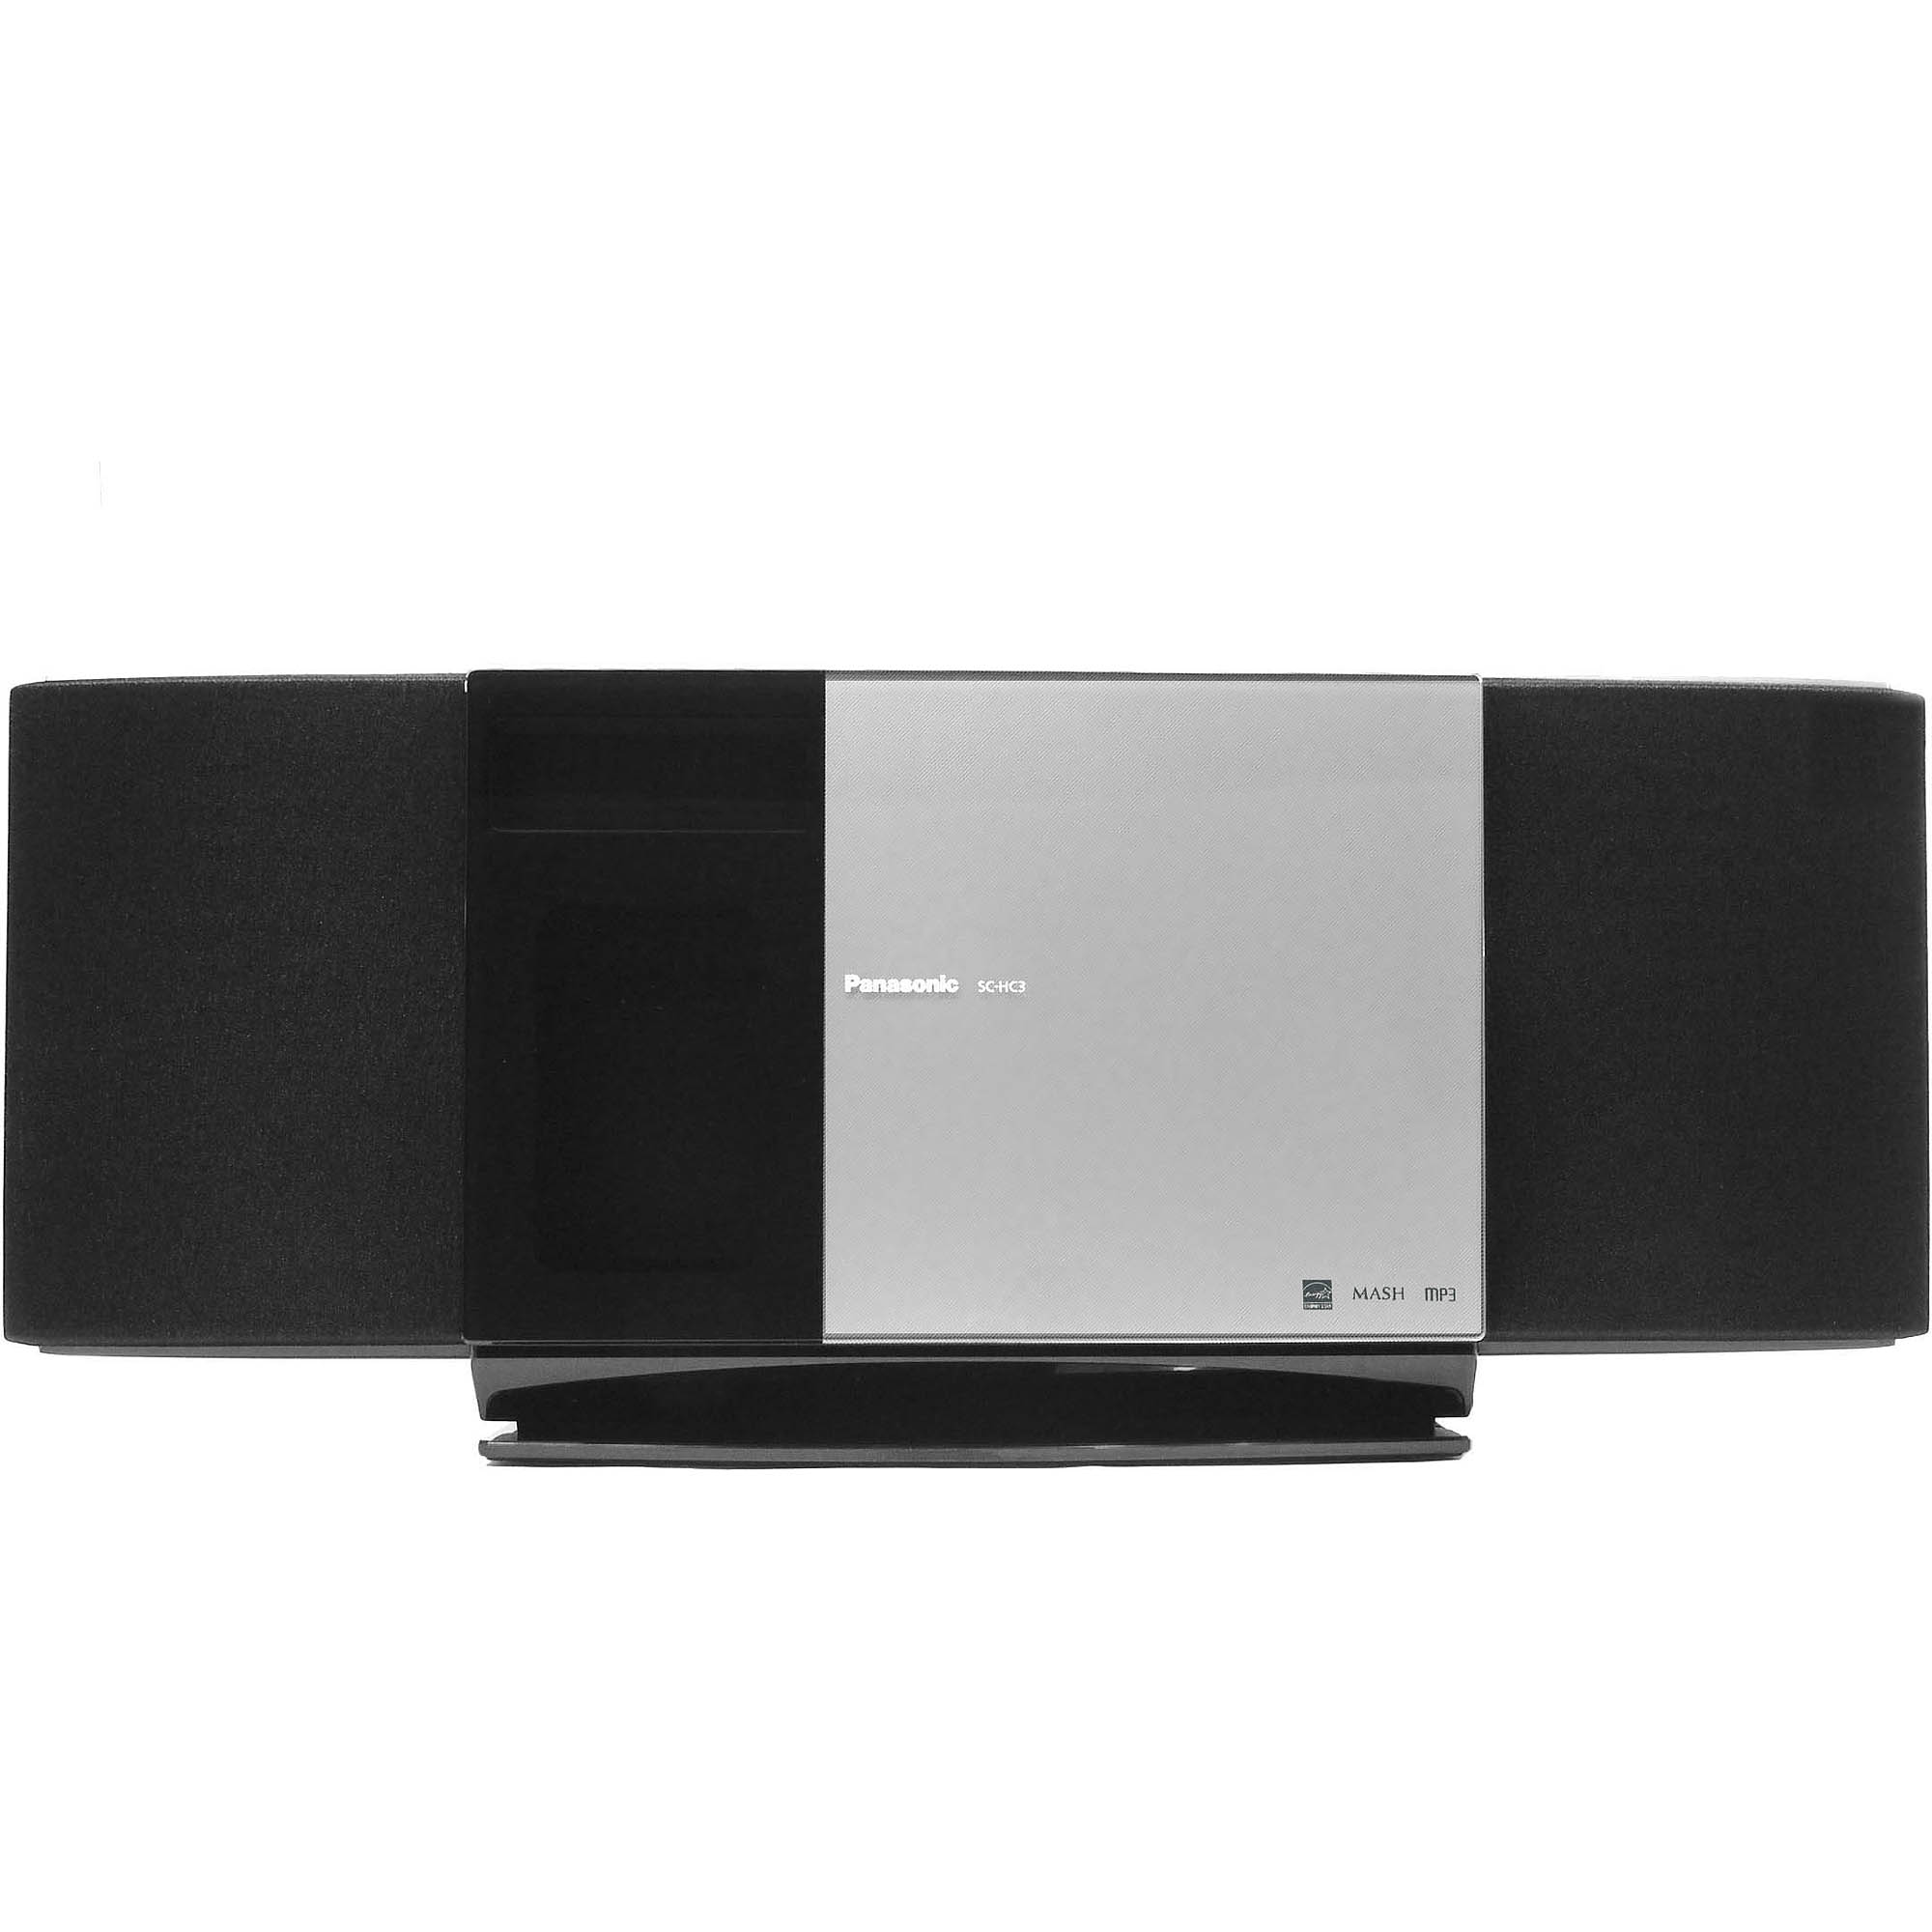 Panasonic SC-HC3 Micro Stereo System with iPod Dock, Refurbished